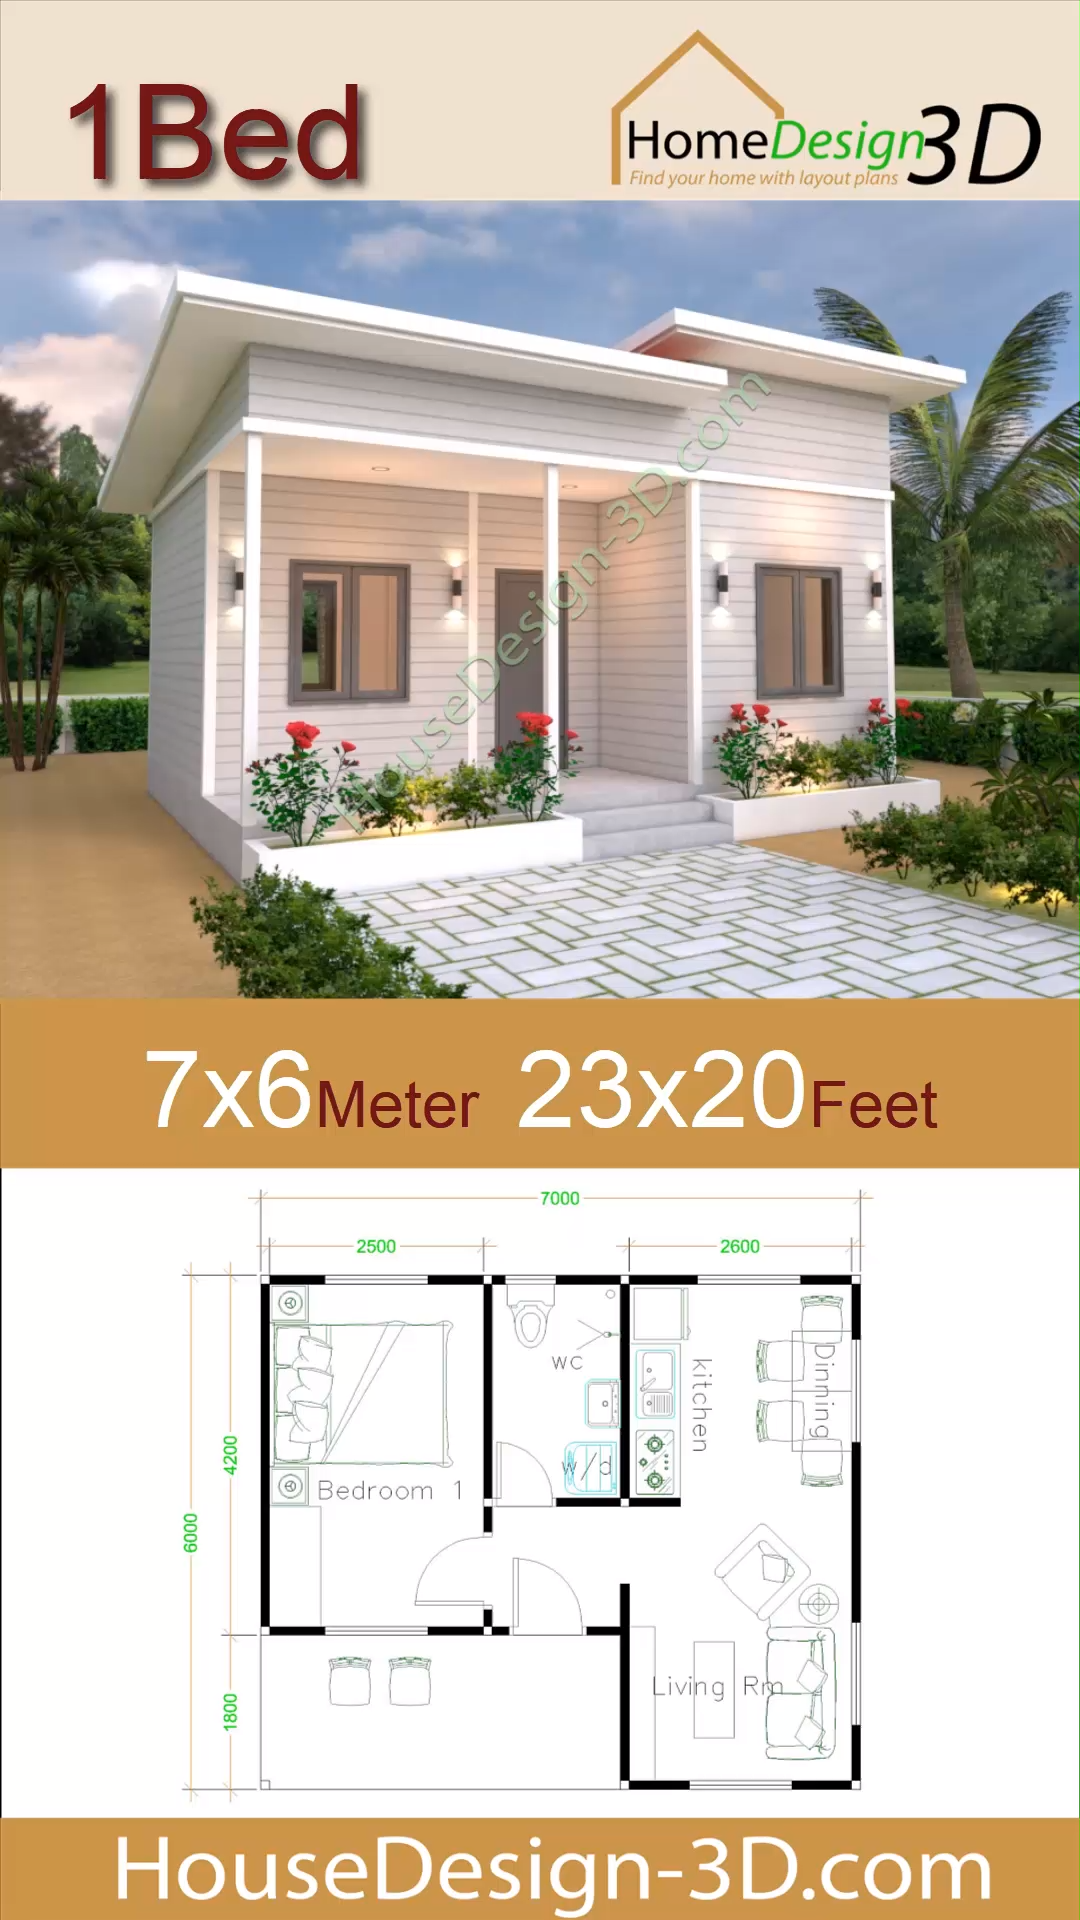 House Plans 7x6 With One Bedroom Shed Roof House Plans 7 6 With One Bedroom Shed Roof The House Has Car Par In 2020 Small House Design House Plans Sims House Plans